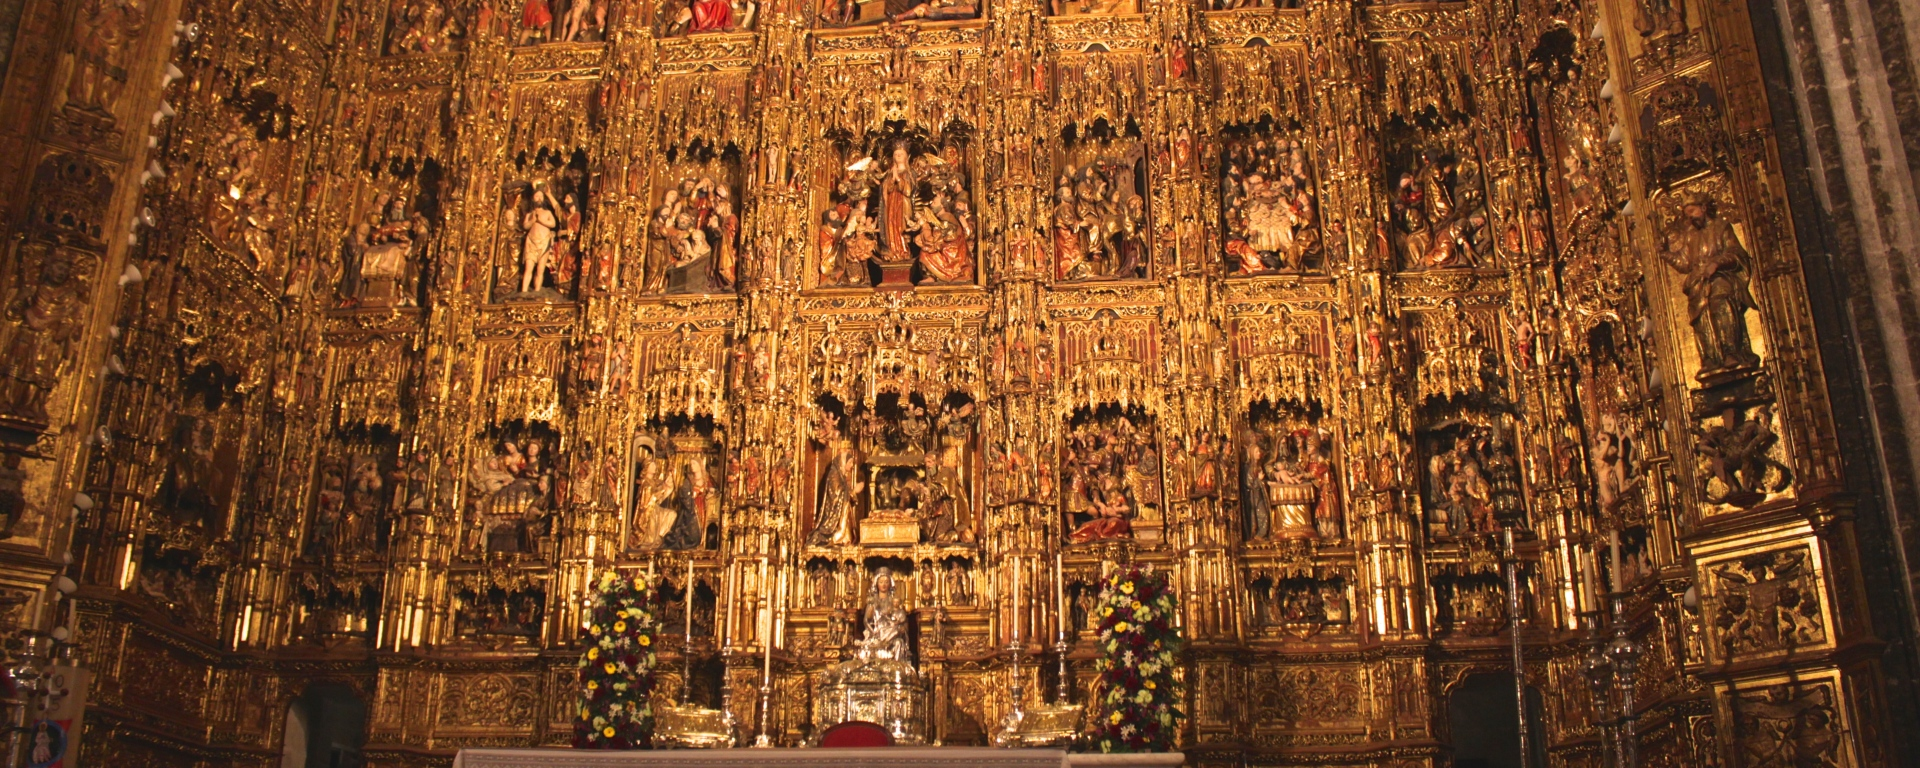 Seville, Spain, cathedral, Seville cathedral, travel, photography, photos, images, travel photography